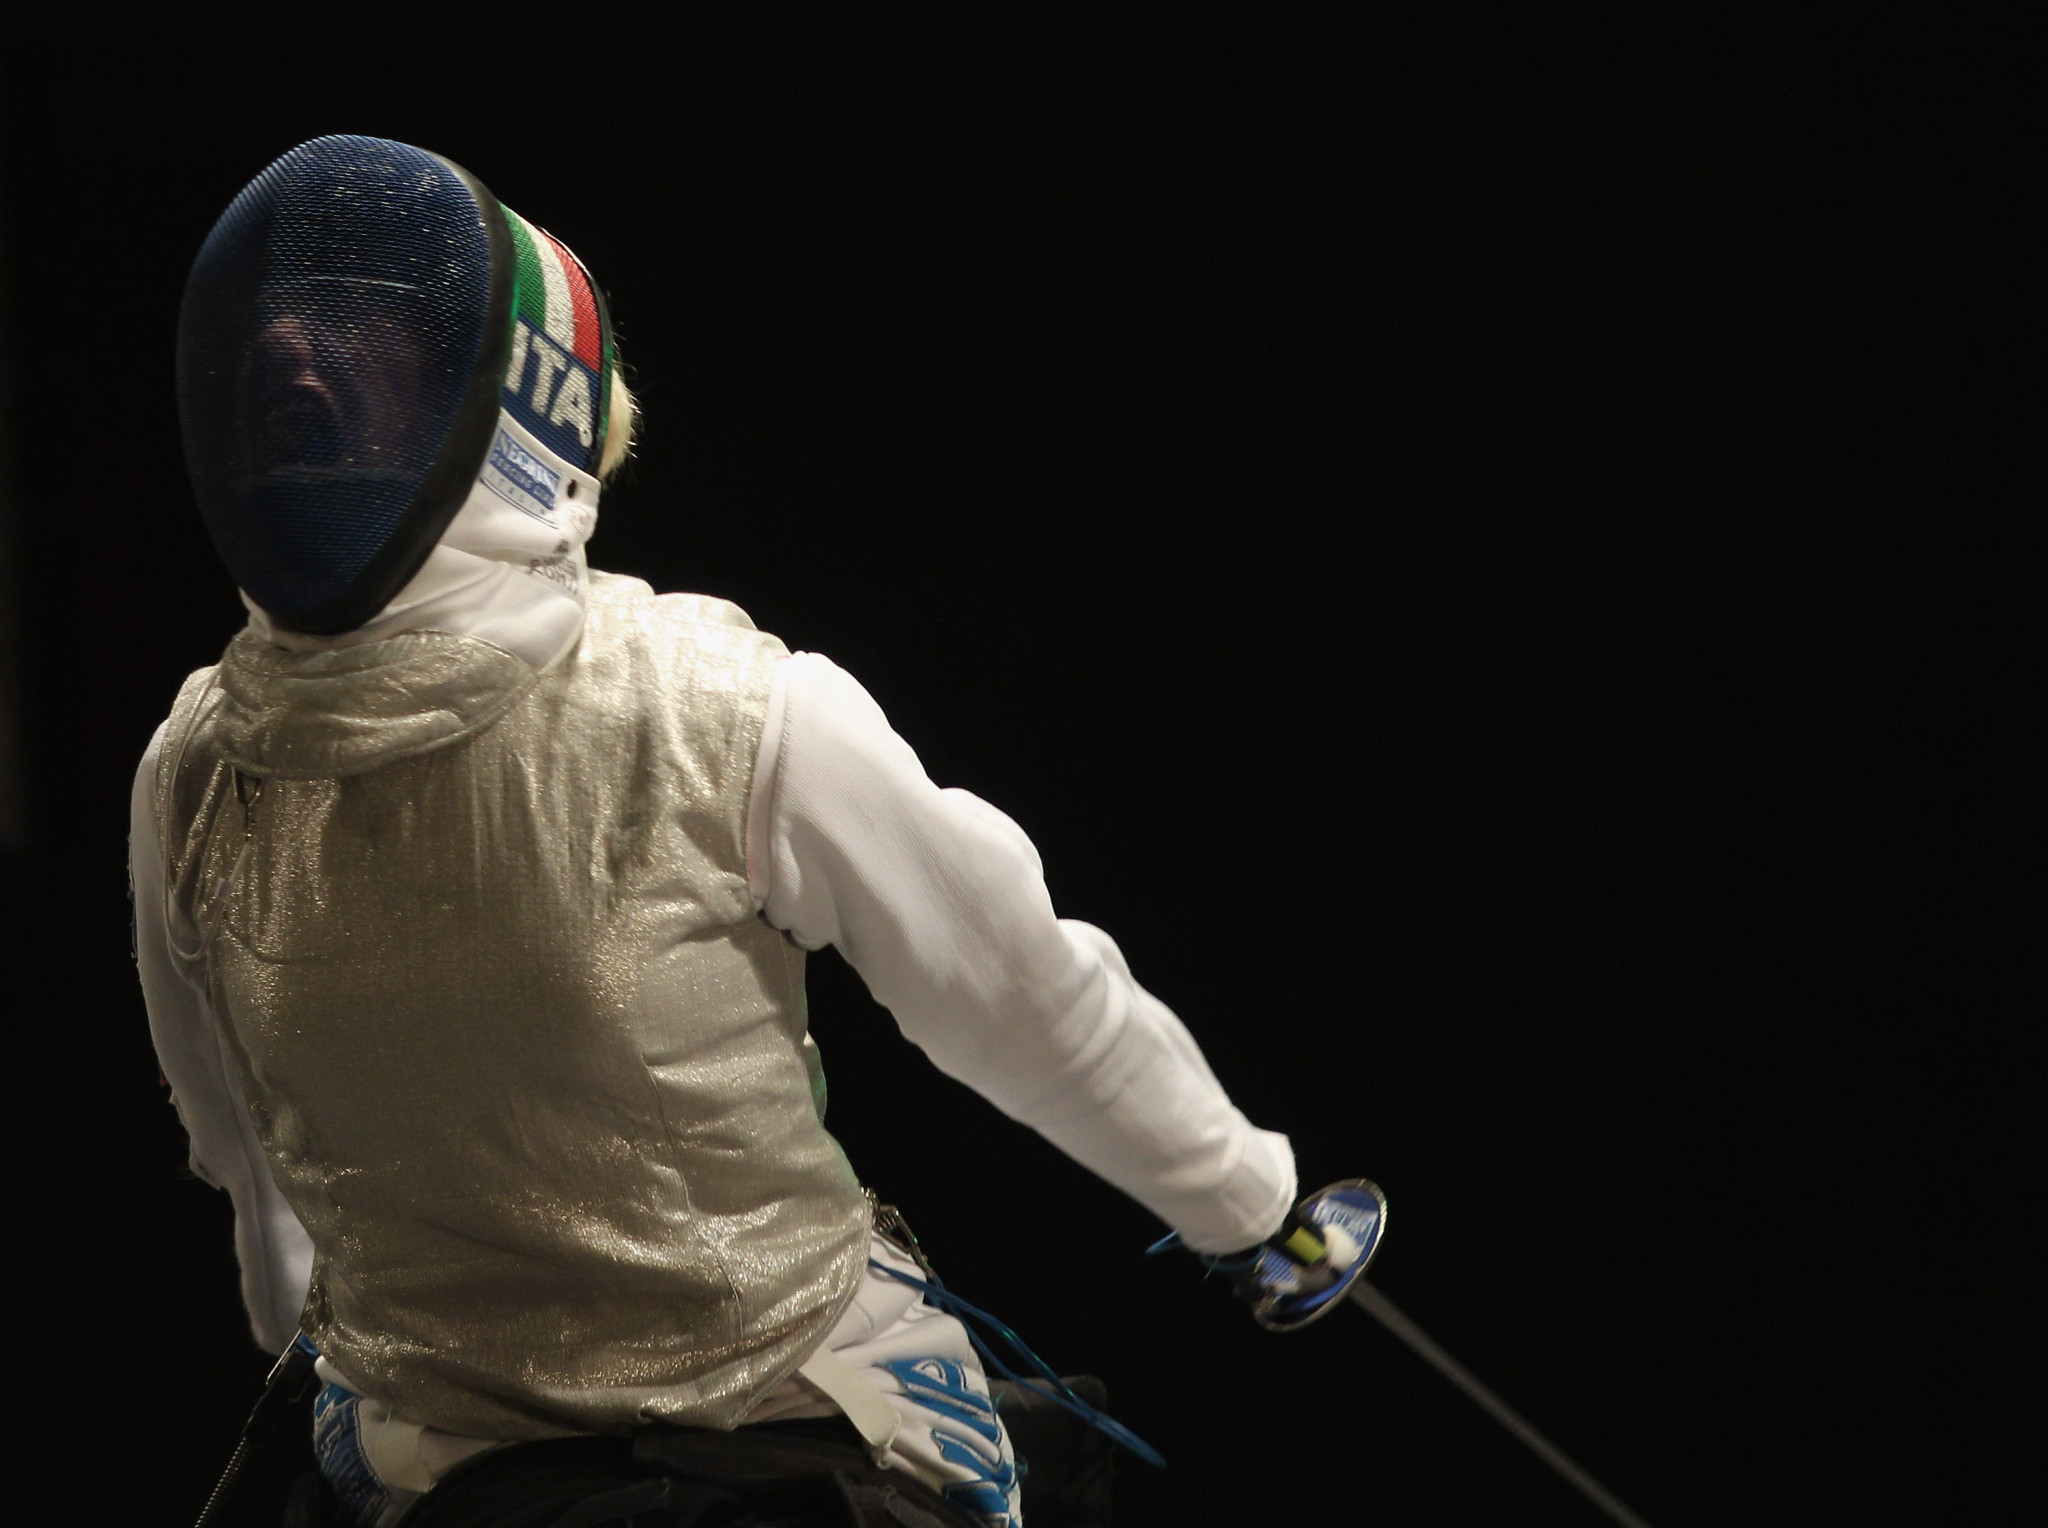 IWAS Wheelchair Fencing closes Paralympic qualification window